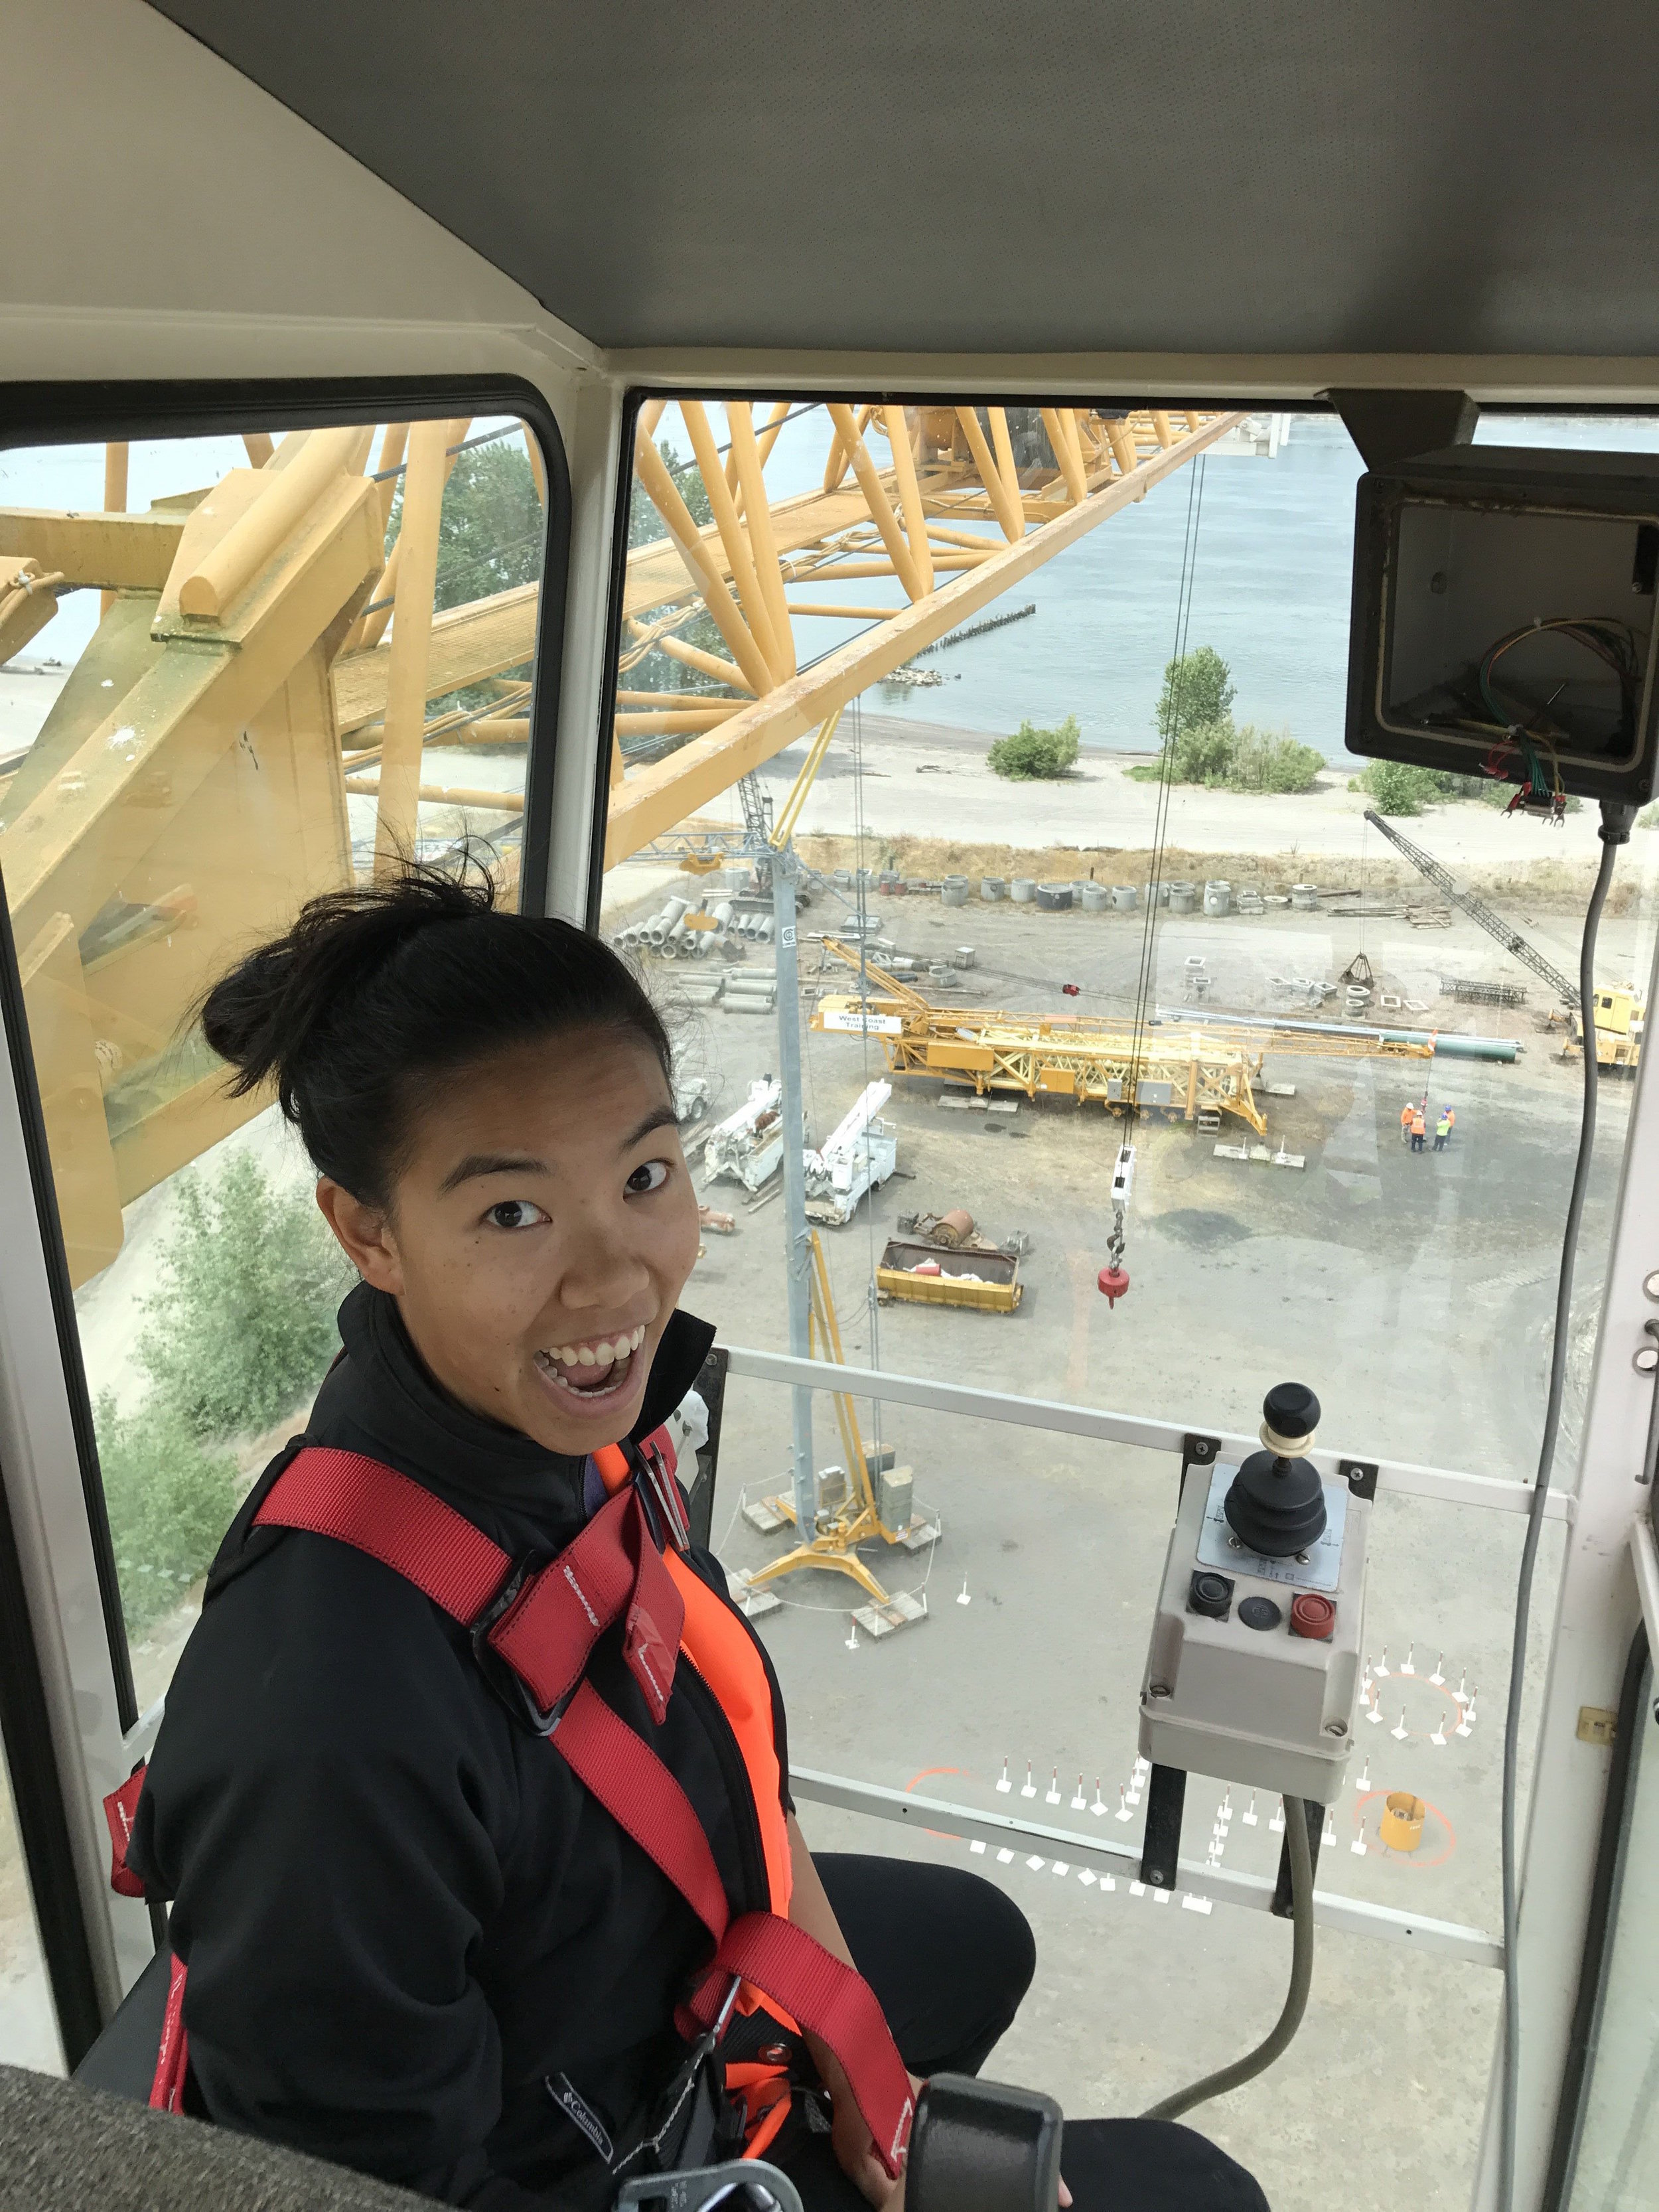 That's me freaking out about being in a 100-foot crane.